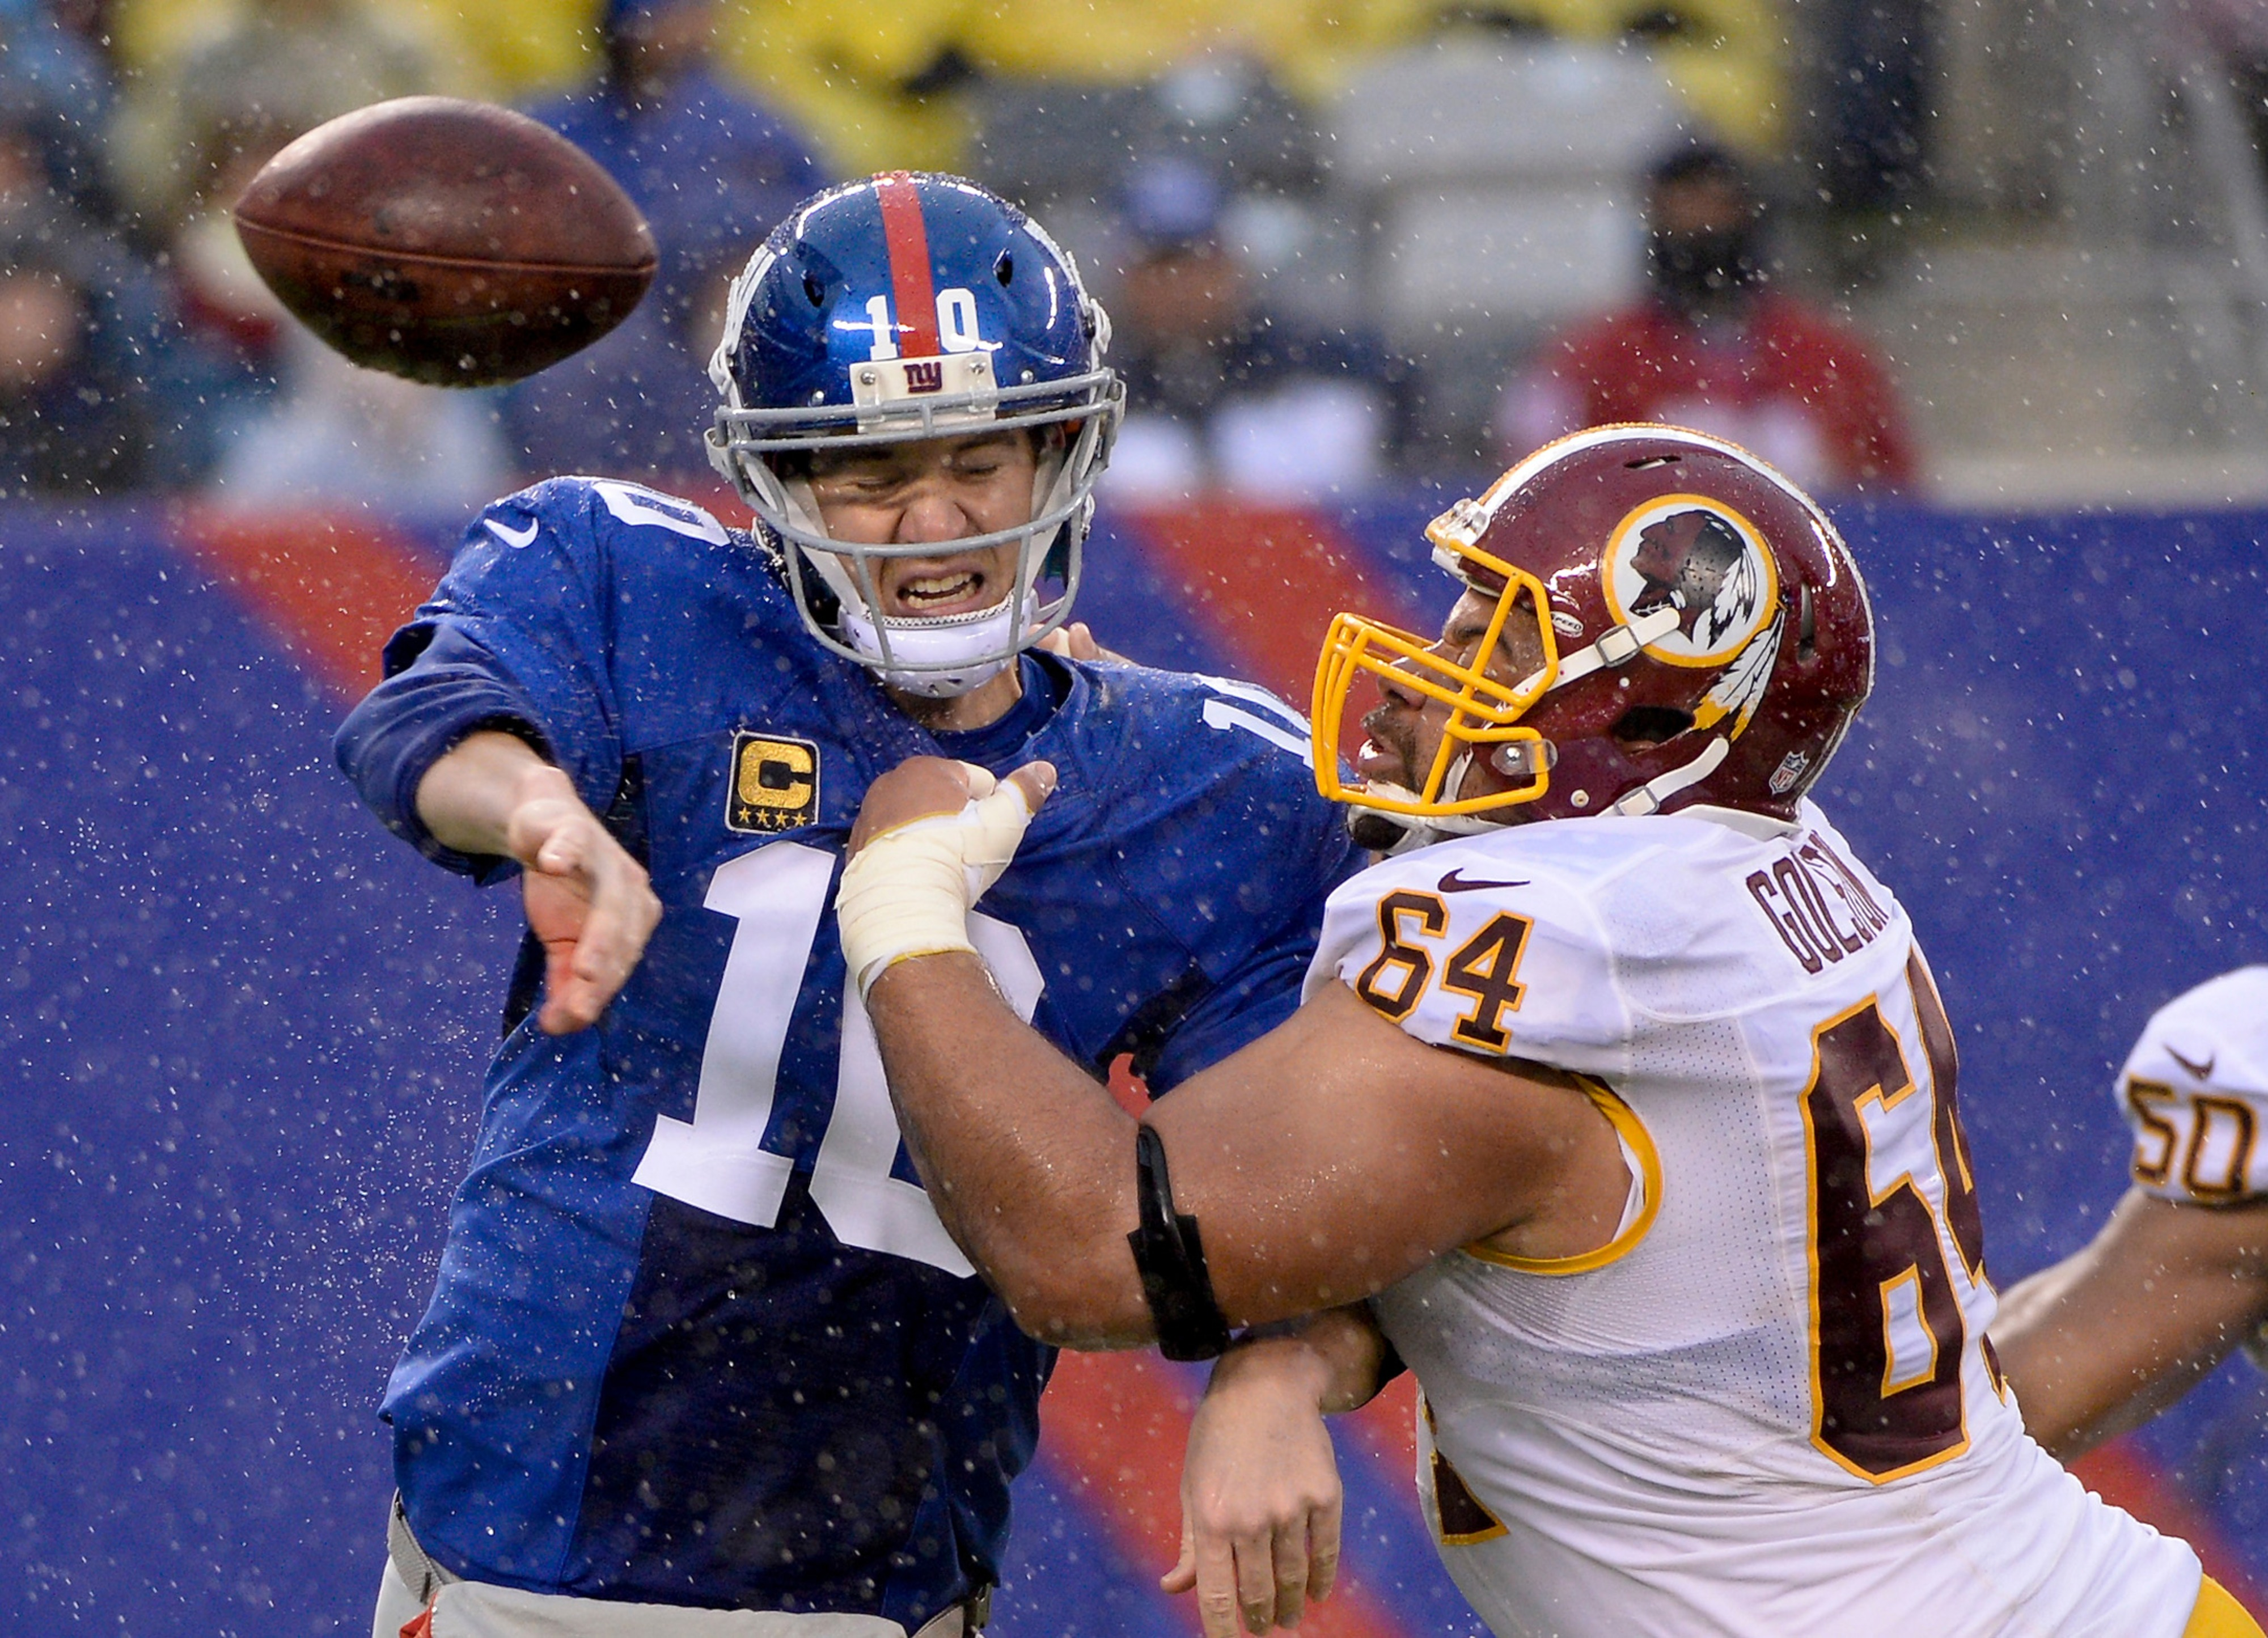 It was this kind of year for Eli Manning and the Giants.